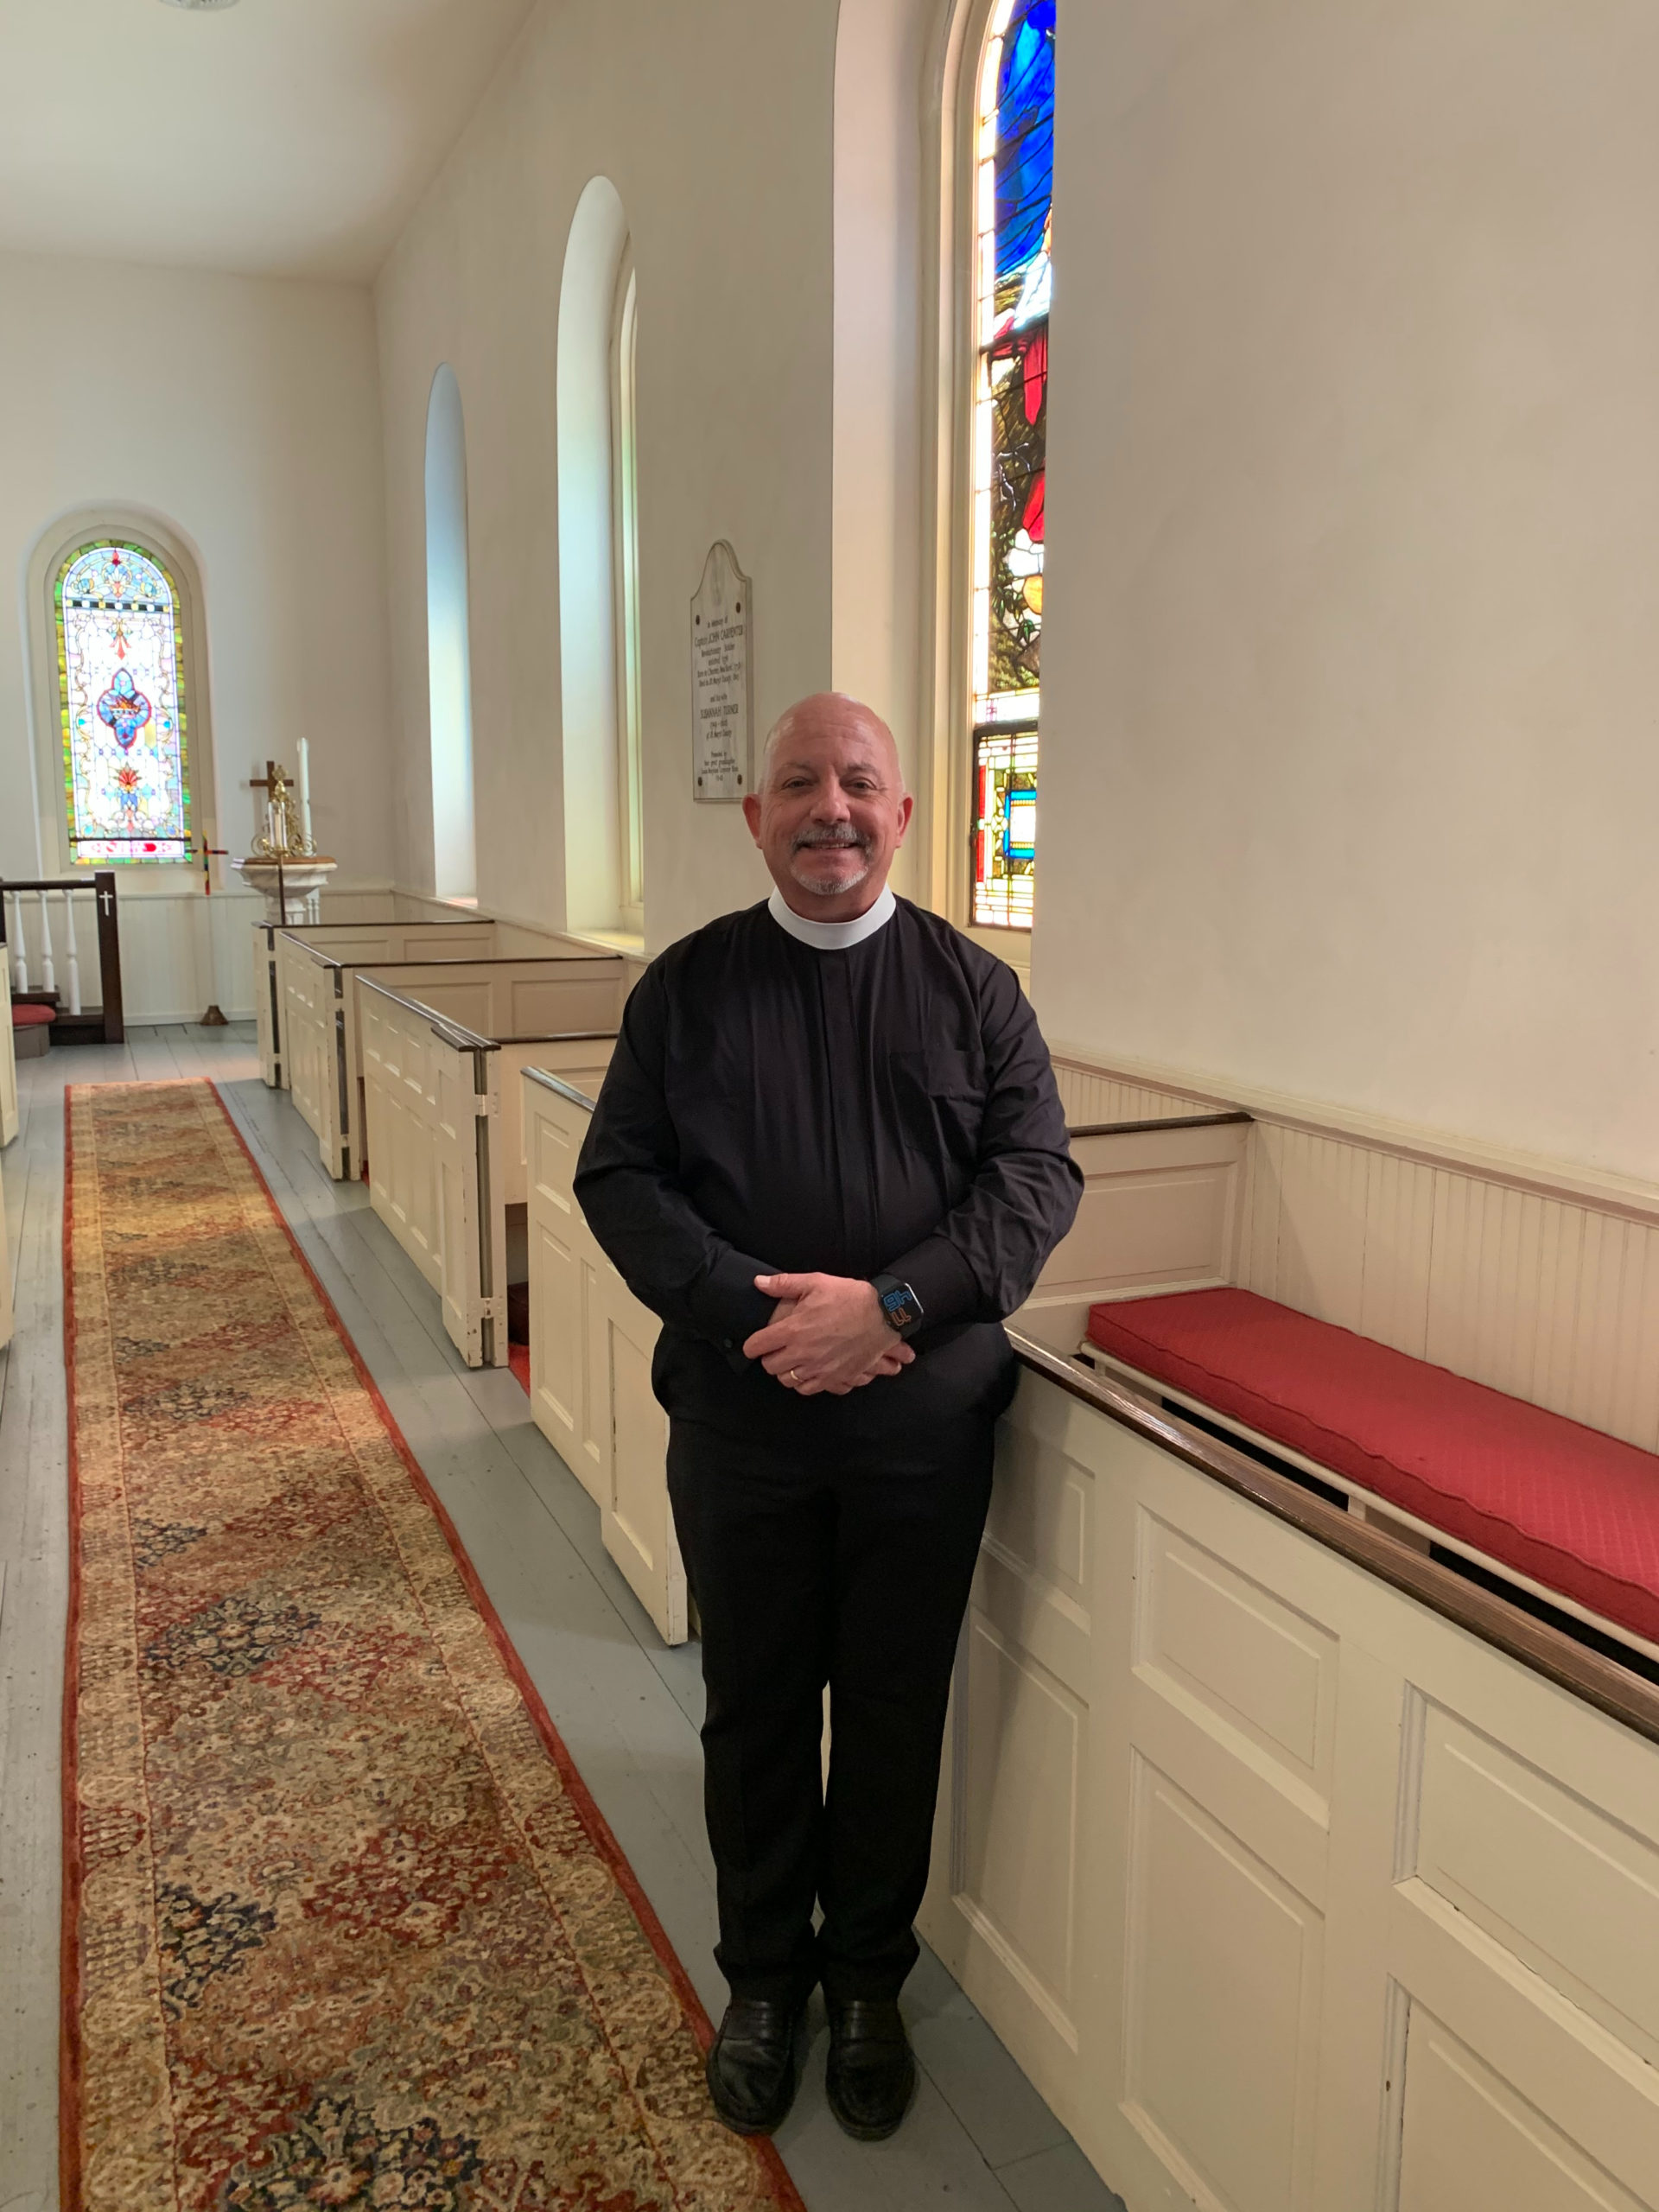 Reverend Chris Jubinski, the new Rector at St. Marks Episcopal Church in Westhampton.